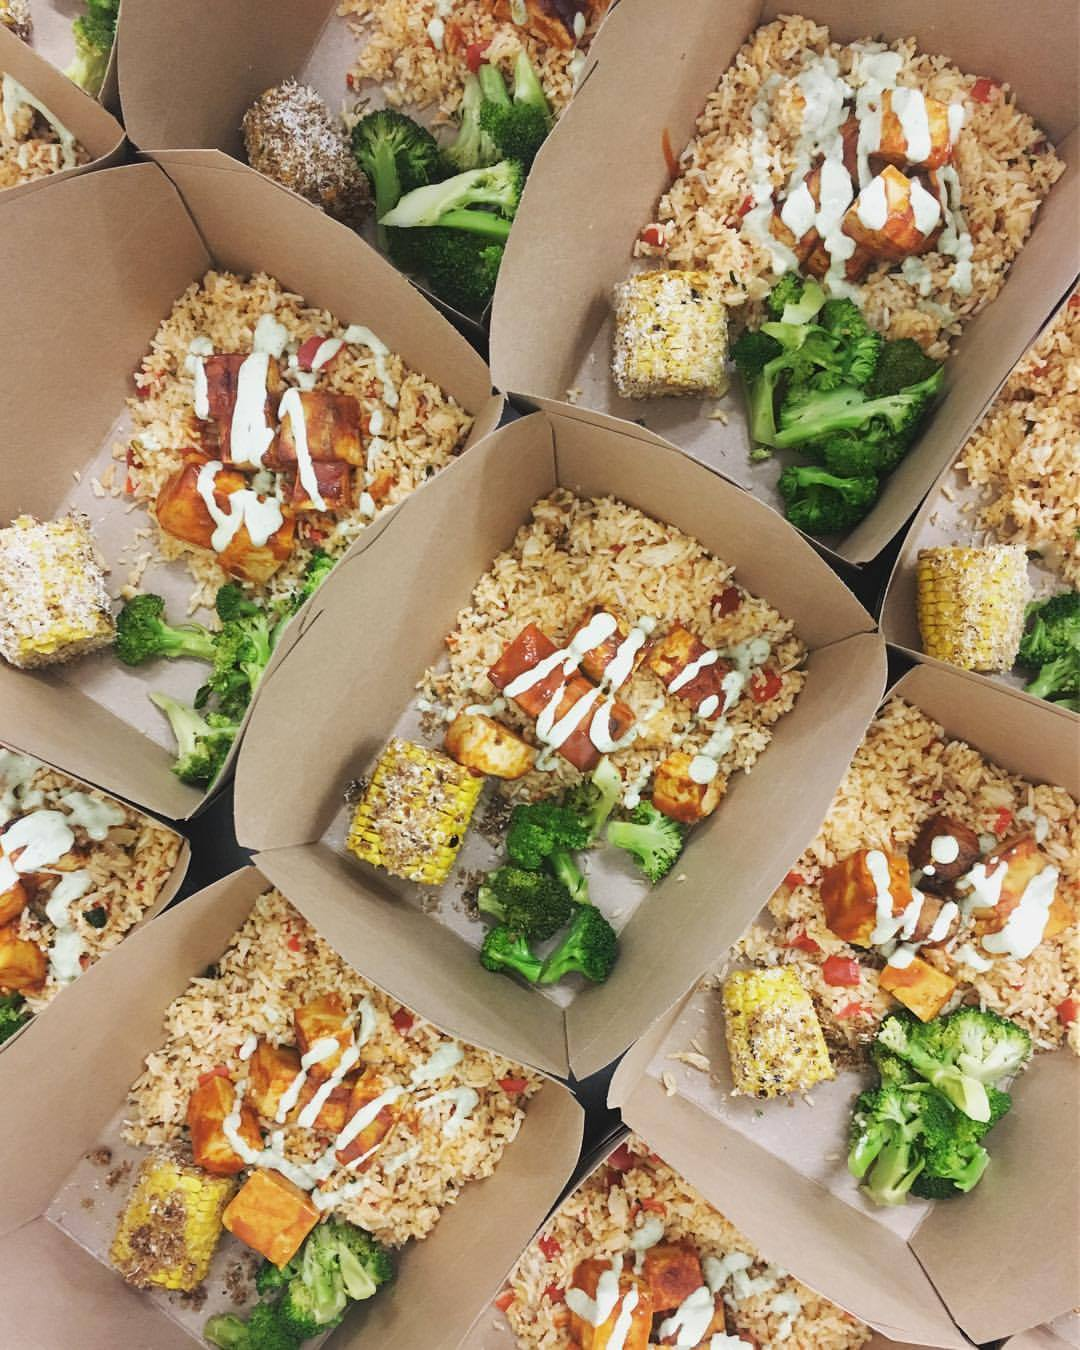 We are all about a fresh approach to conscious eating - So we've created a catering menu that is delicious, seasonal, and totally bad-ass!